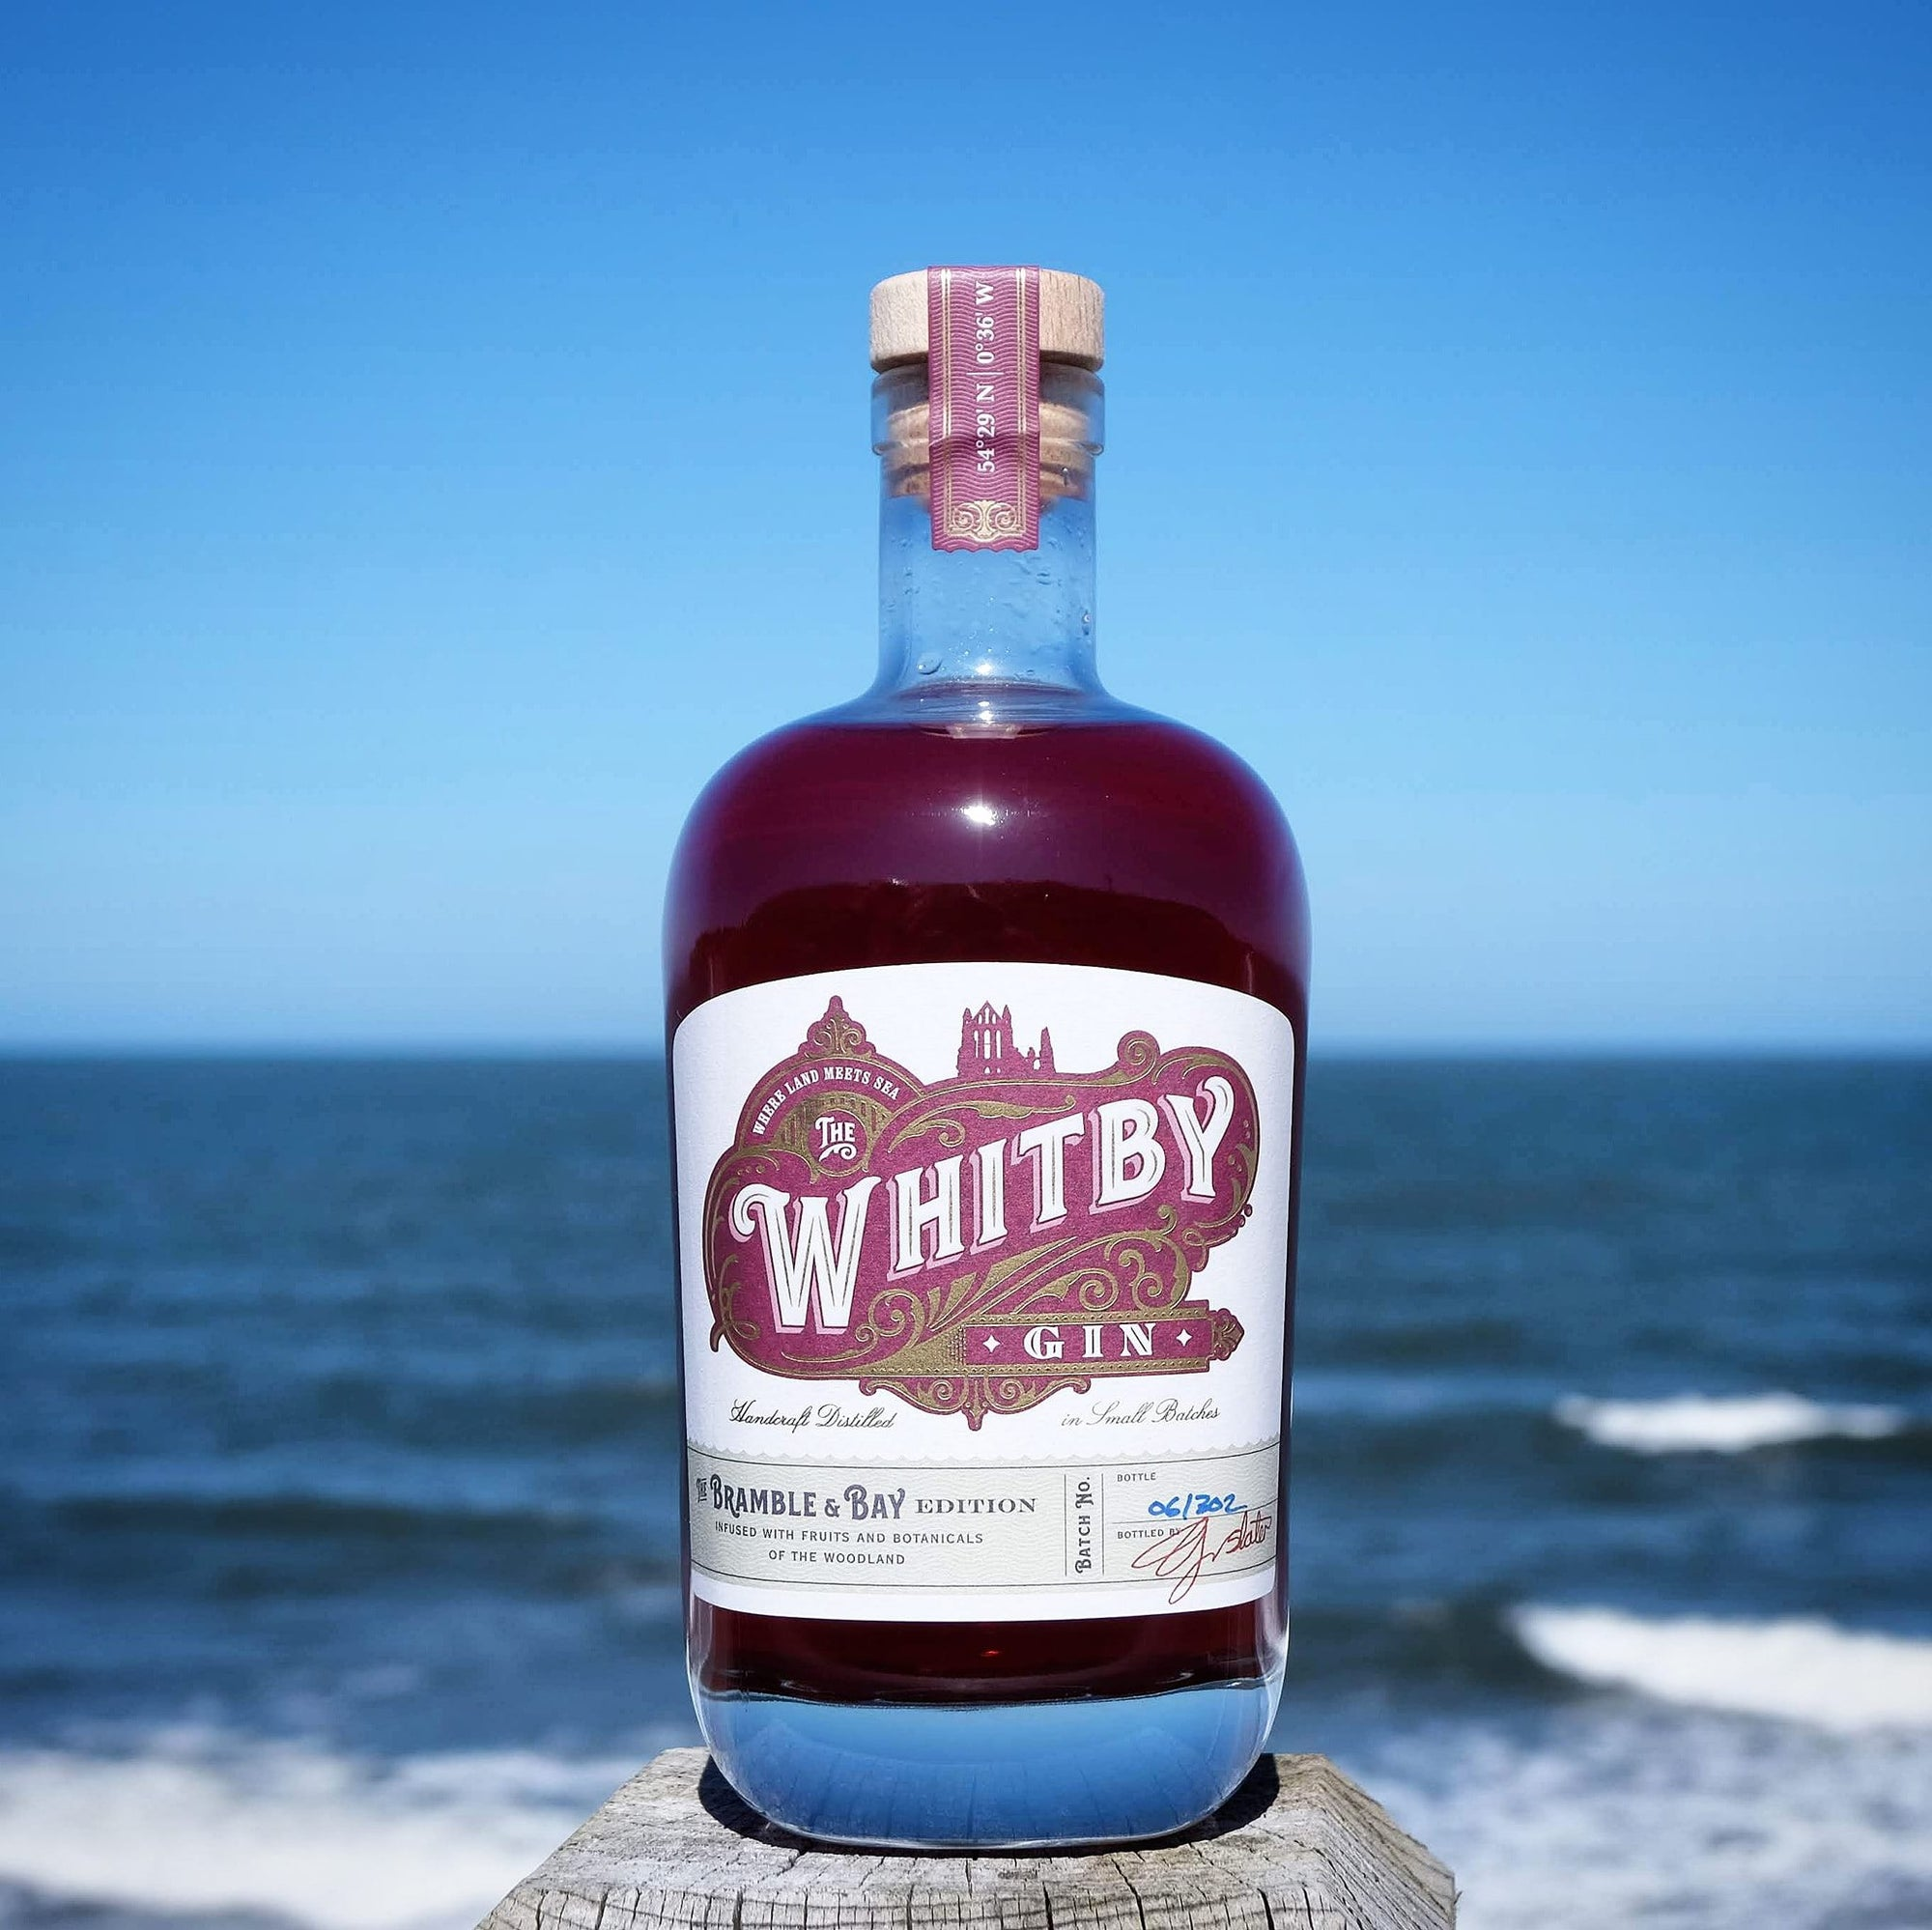 Whitby Gin - Bramble & Bay Edition